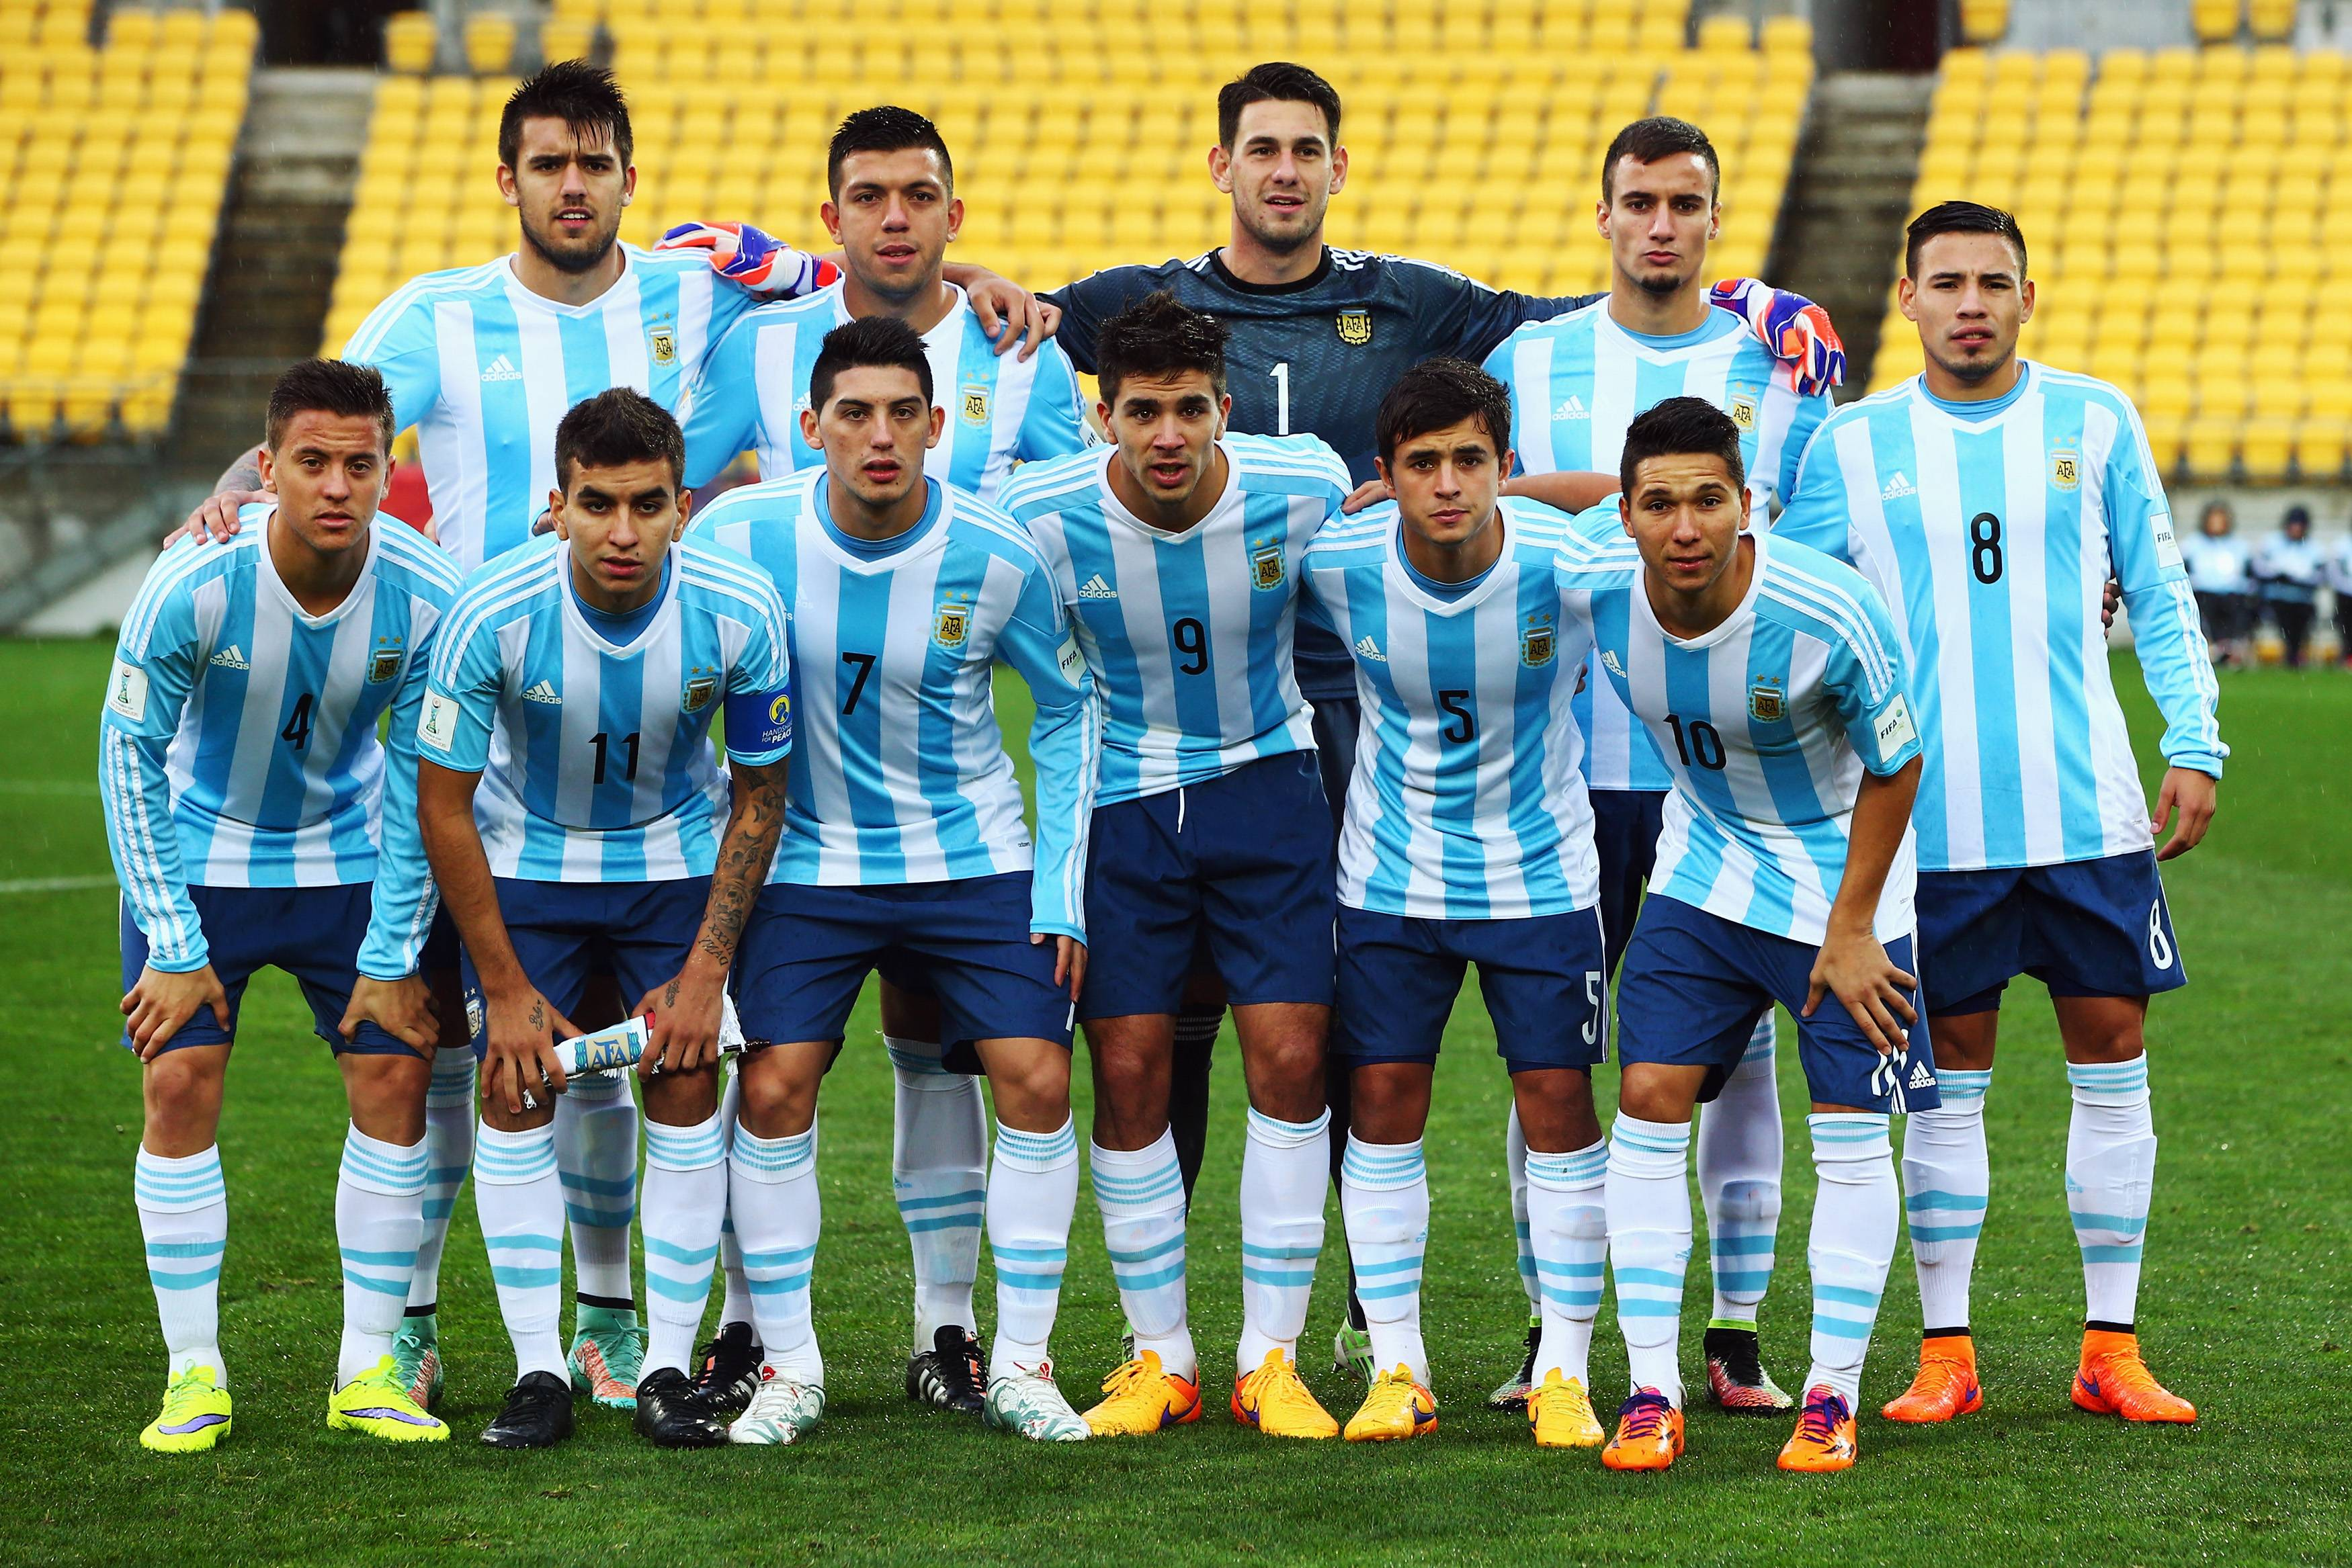 Argentina U-20 to play friendlies in Vietnam